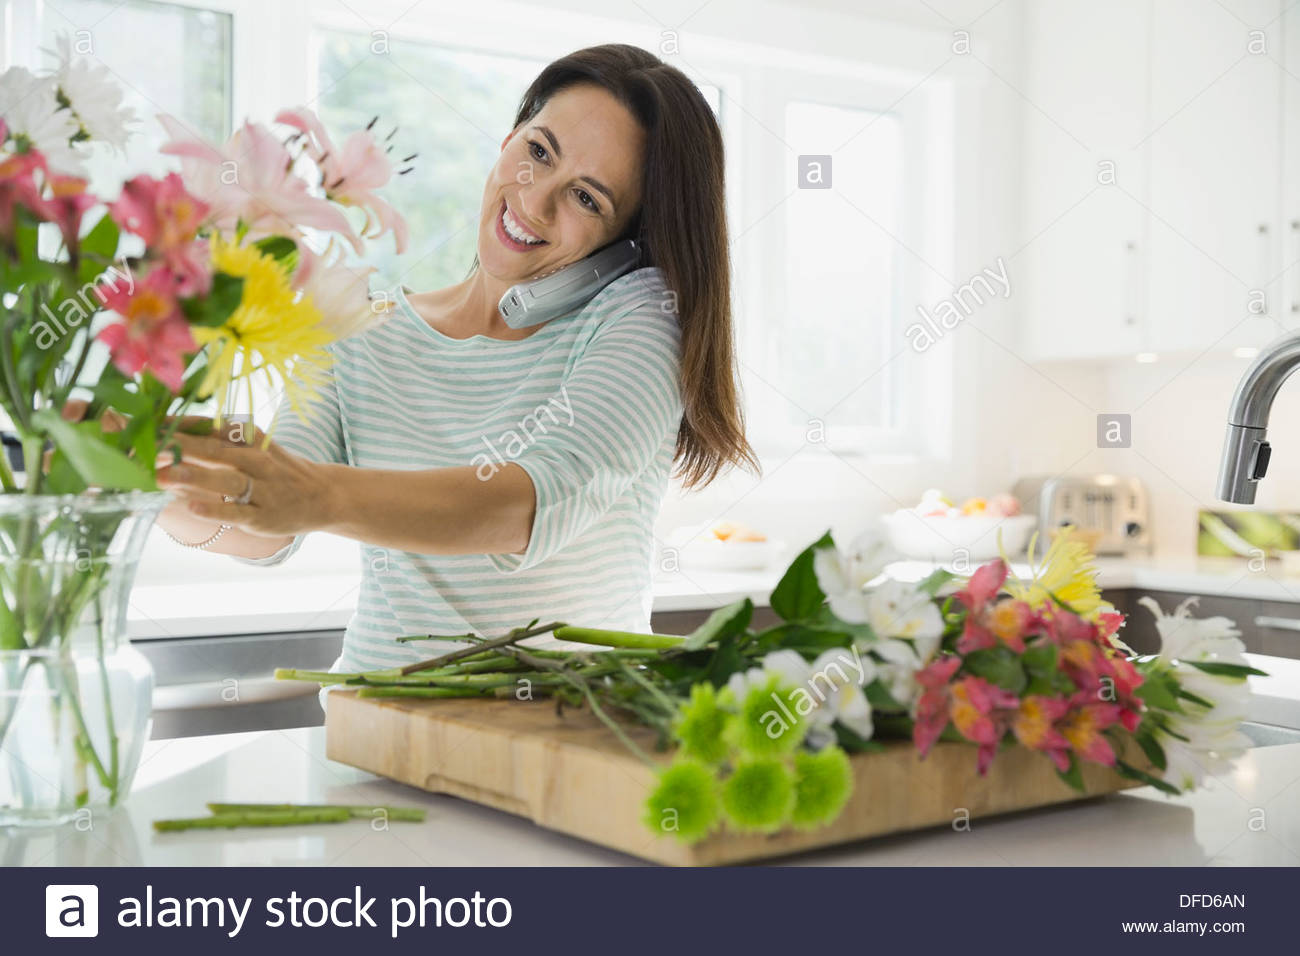 Woman talking on phone in kitchen while arranging flowers - Stock Image